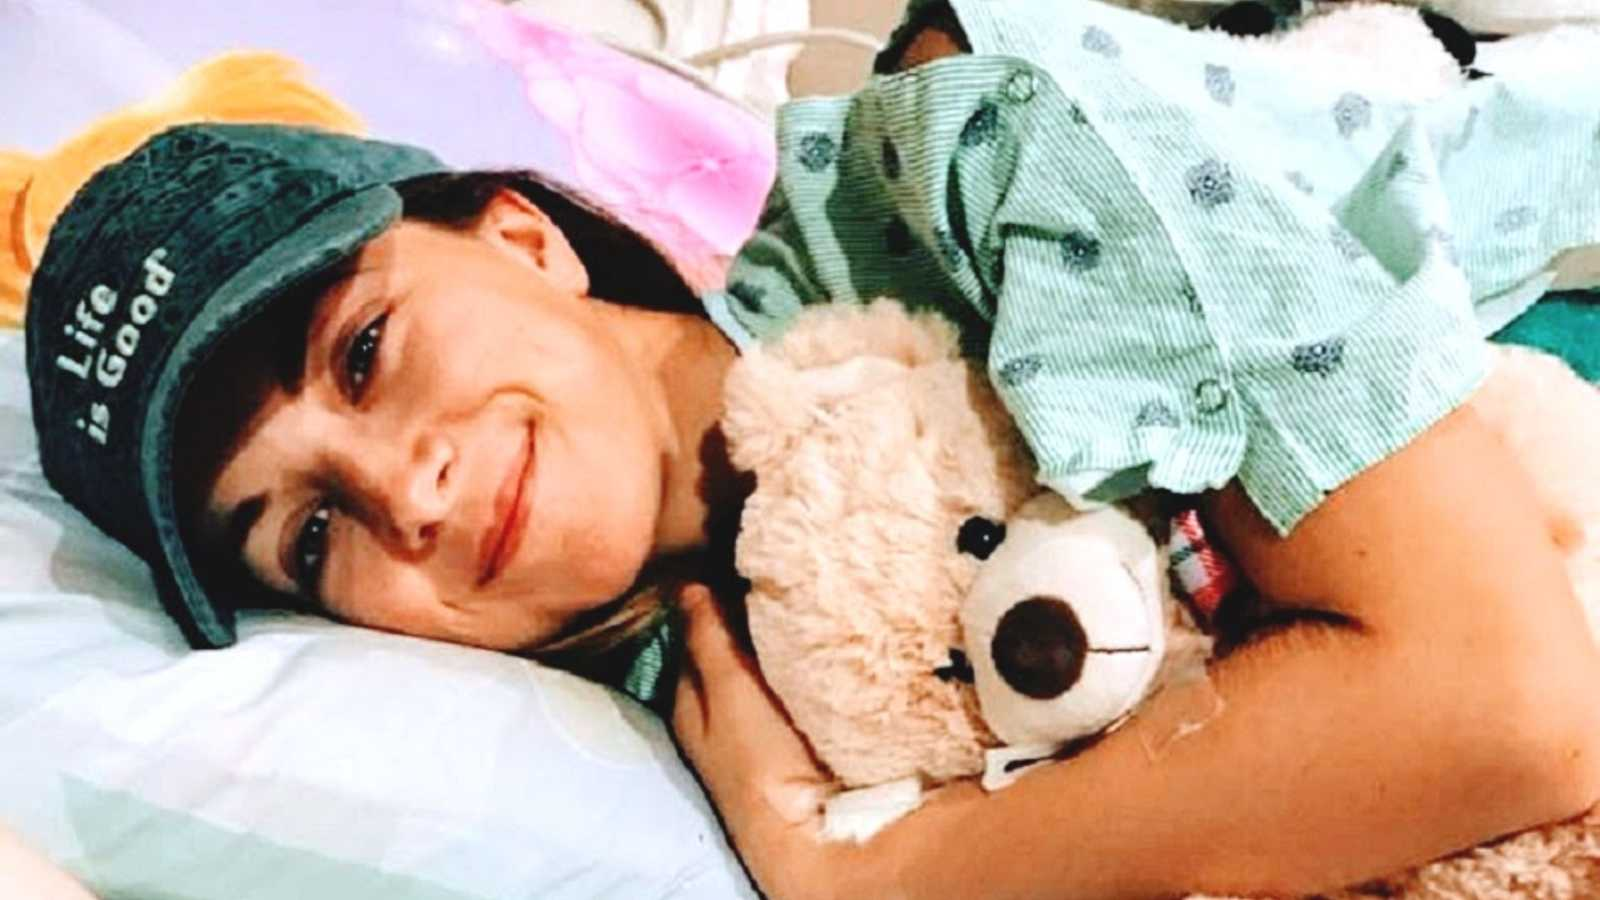 Chronic illness patient lies in hospital bed with stuffed bear